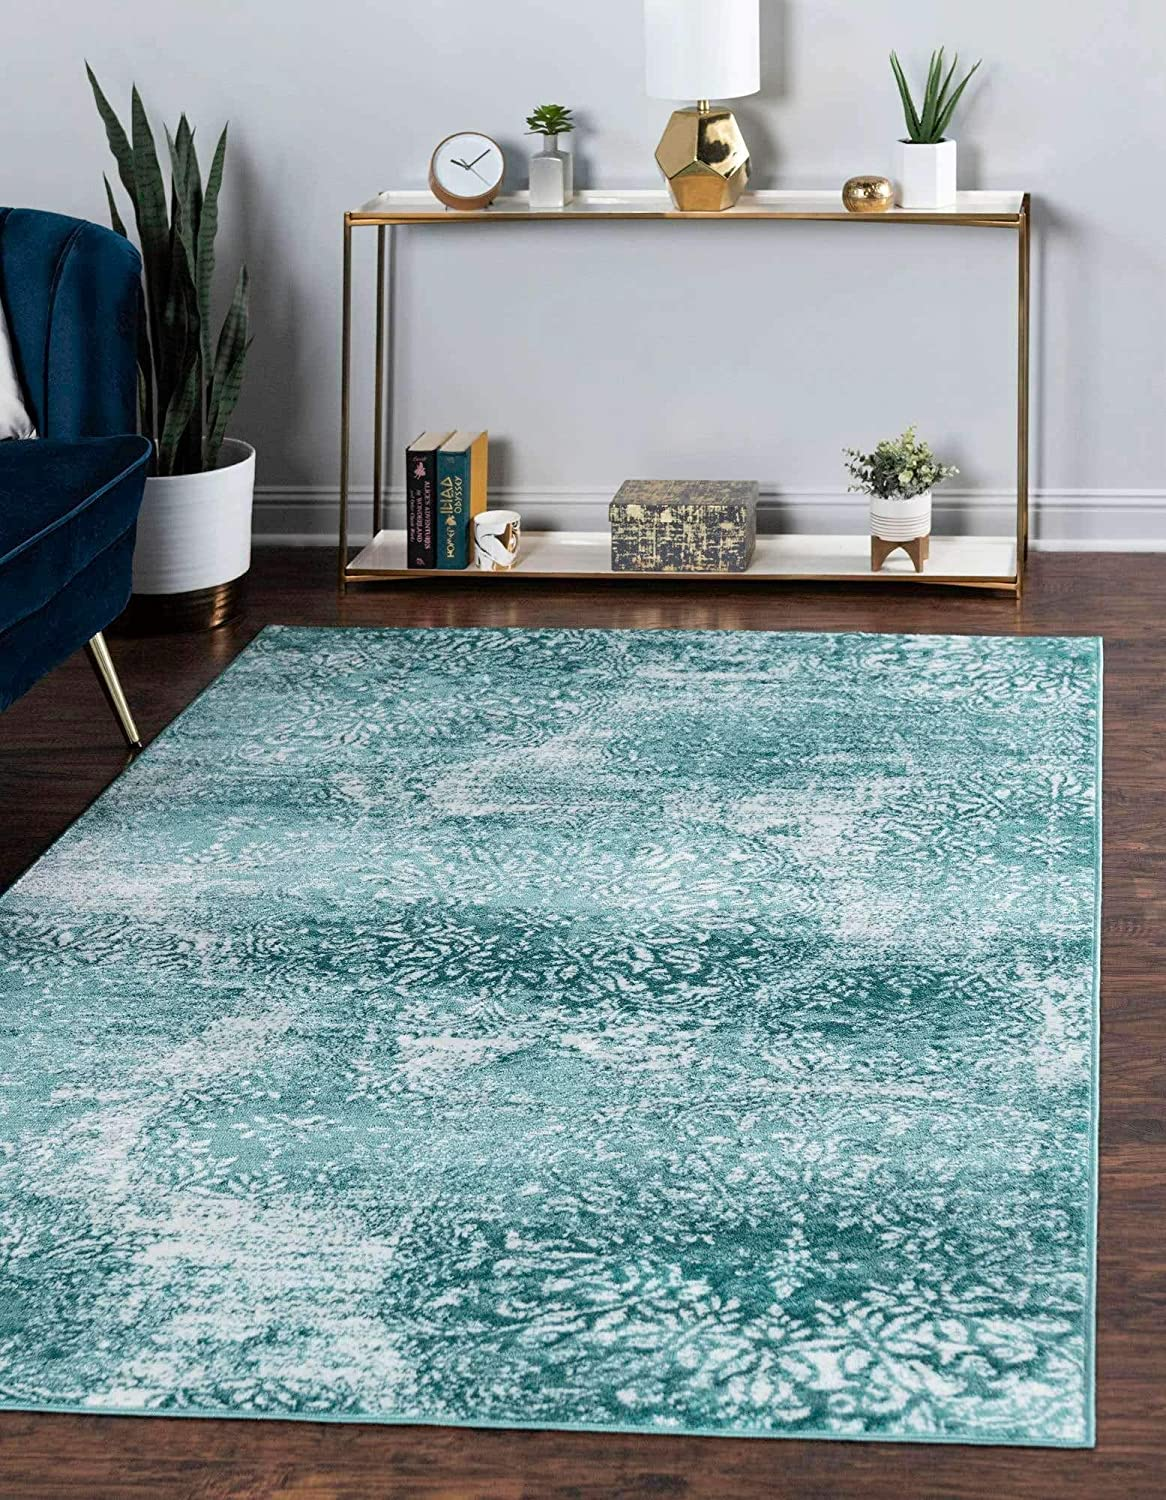 Unique Loom Sofia Traditional Area Rug, 4' 0 x 6' 0, Turquoise